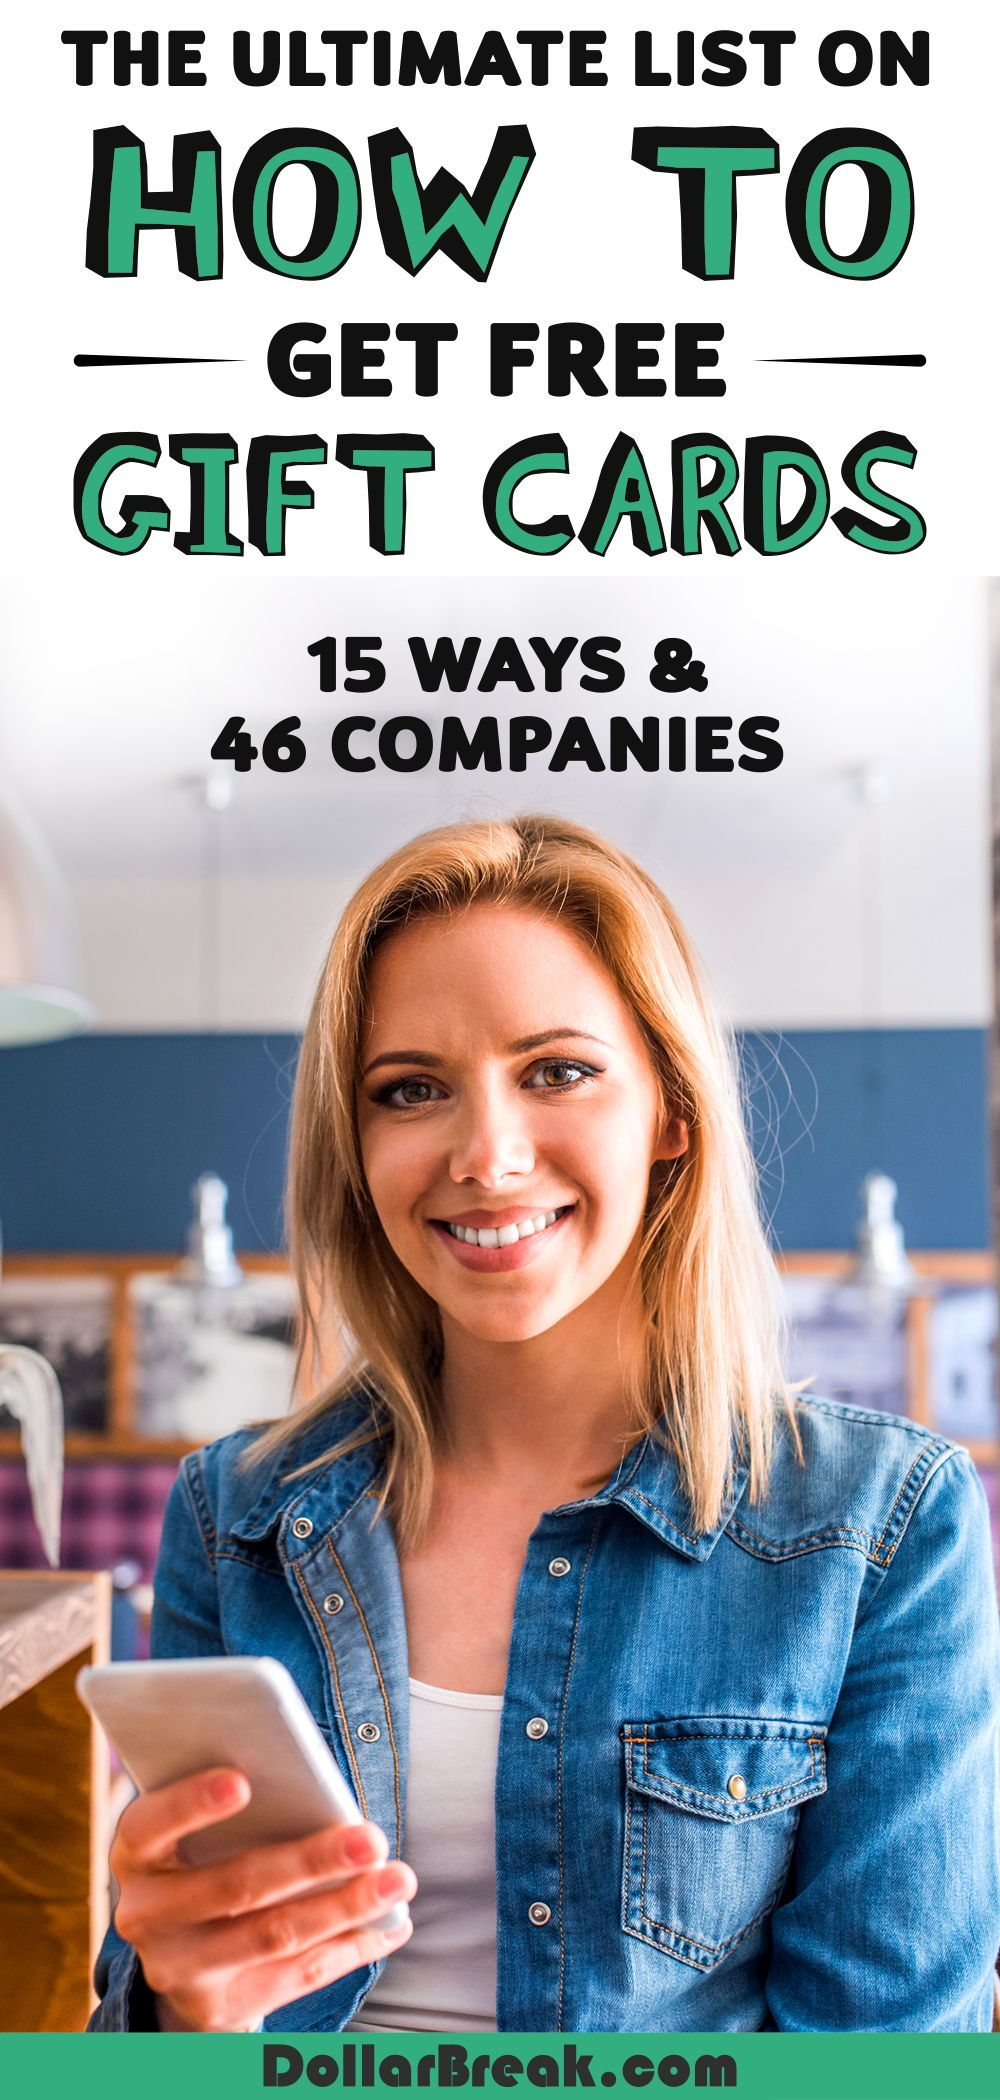 Free gift cards 15 ways to earn gift cards online 46